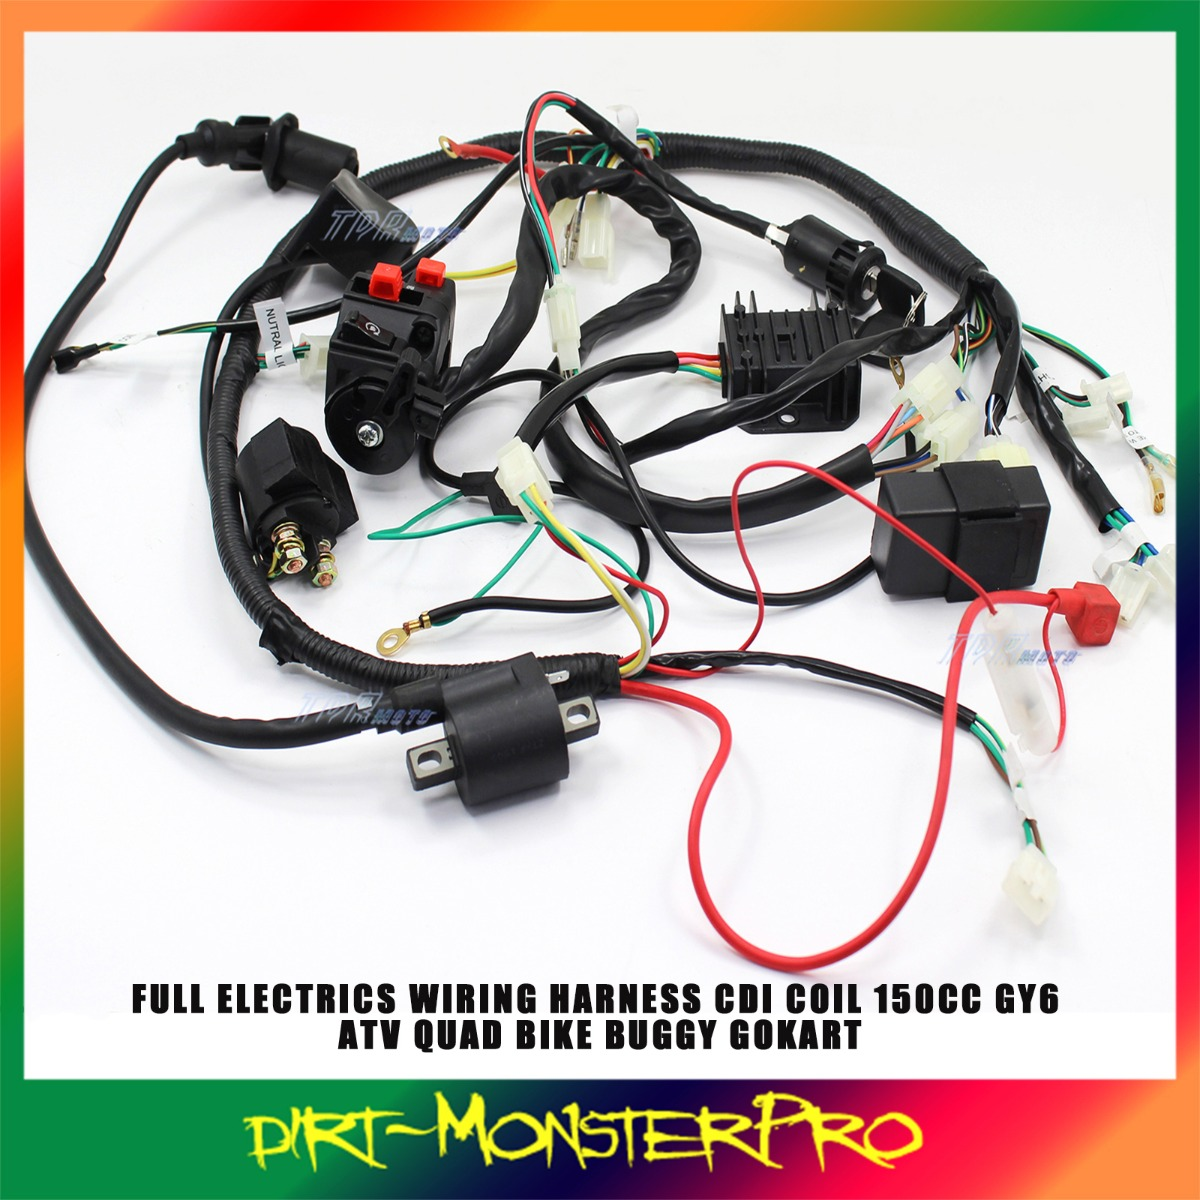 TD356 DIRT buggy wiring harness loom gy6 150cc chinese electric start kandi gy6 go kart wiring harness at gsmx.co